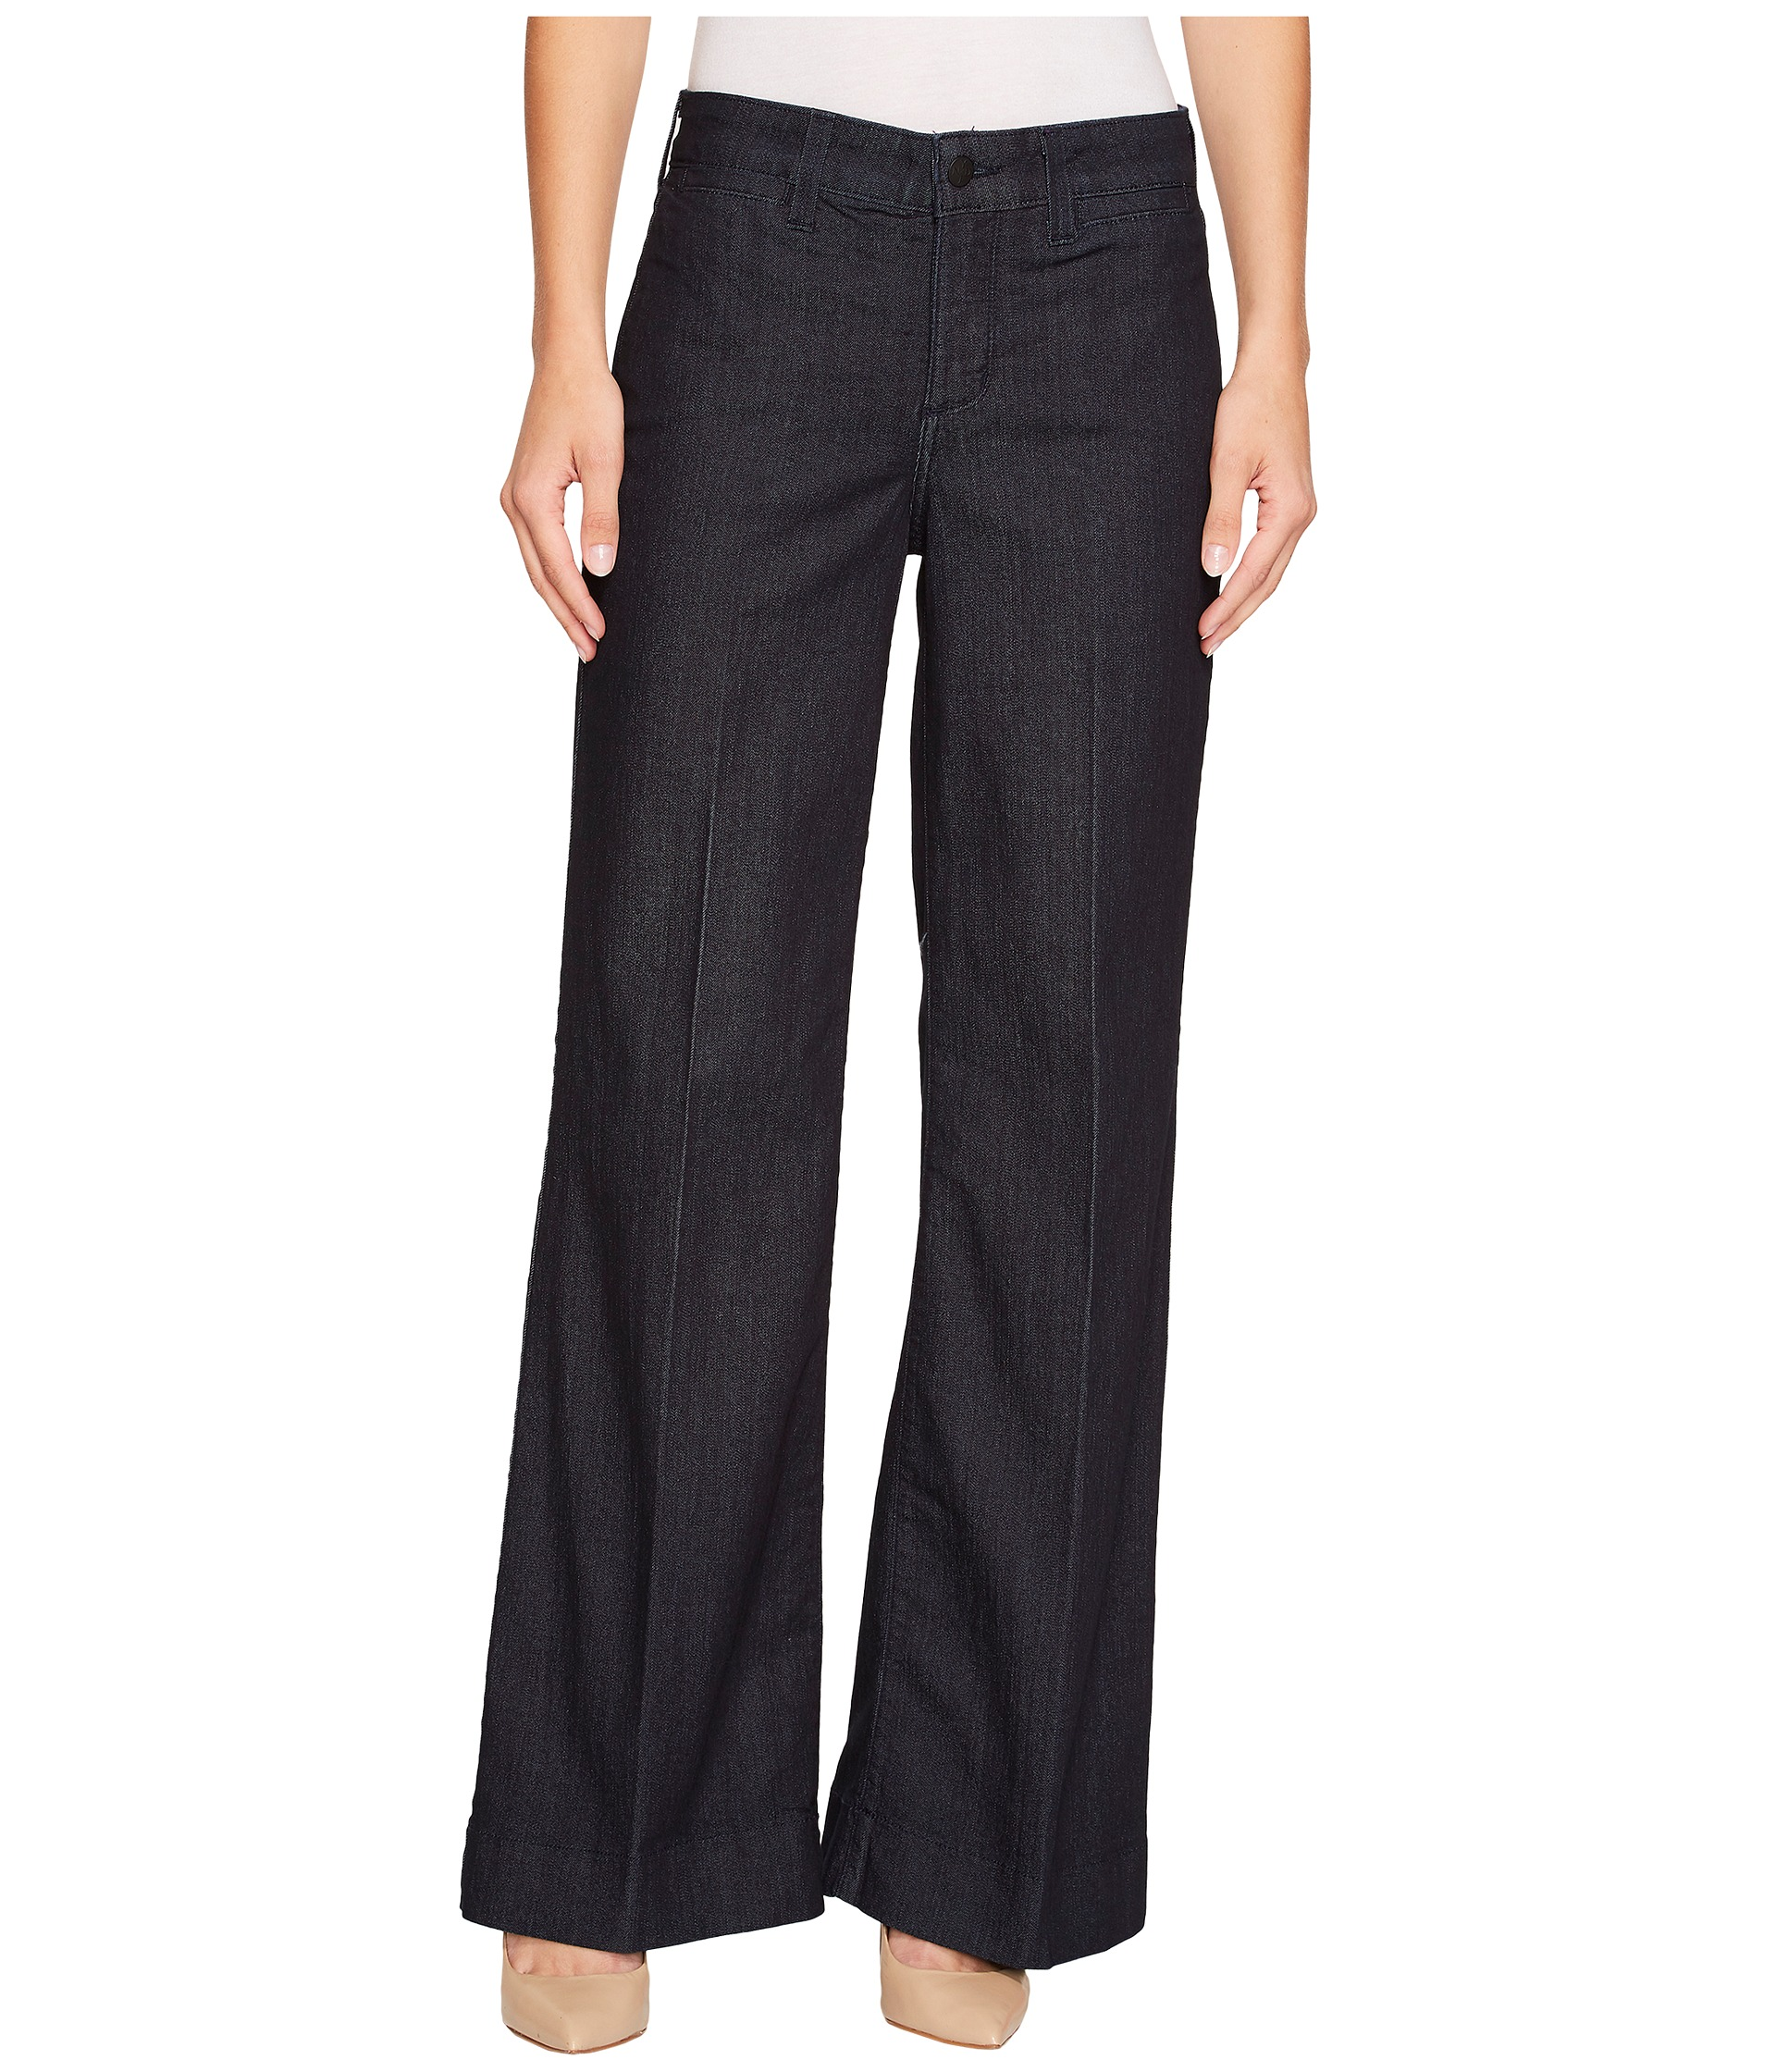 NYDJ Greta Trouser in Dark Enzyme at Zappos.com